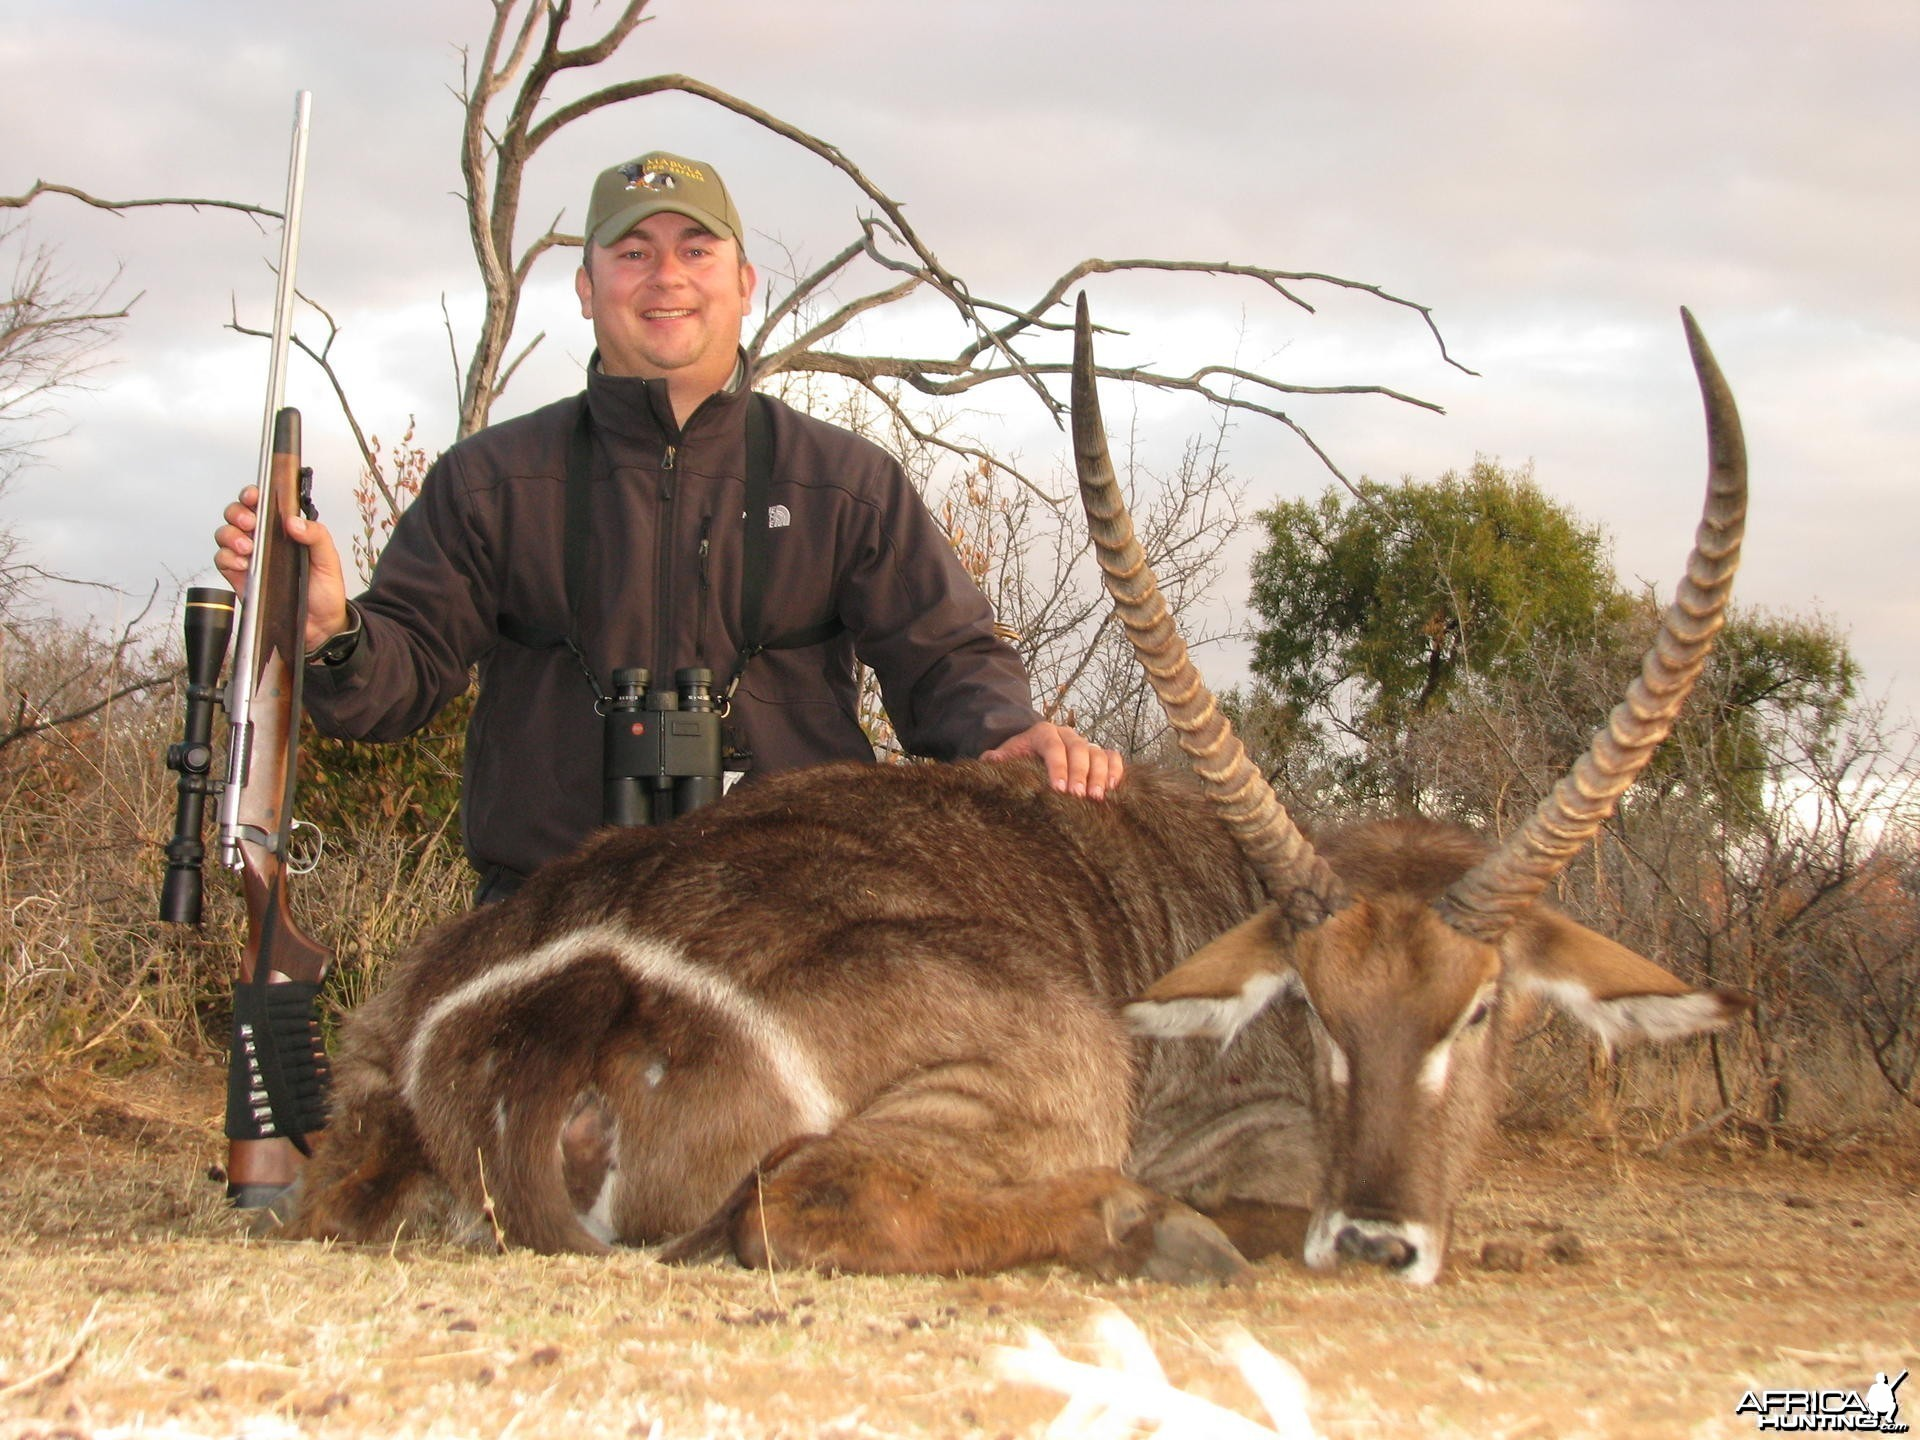 Waterbuck Hunt at Mabula Pro Safaris